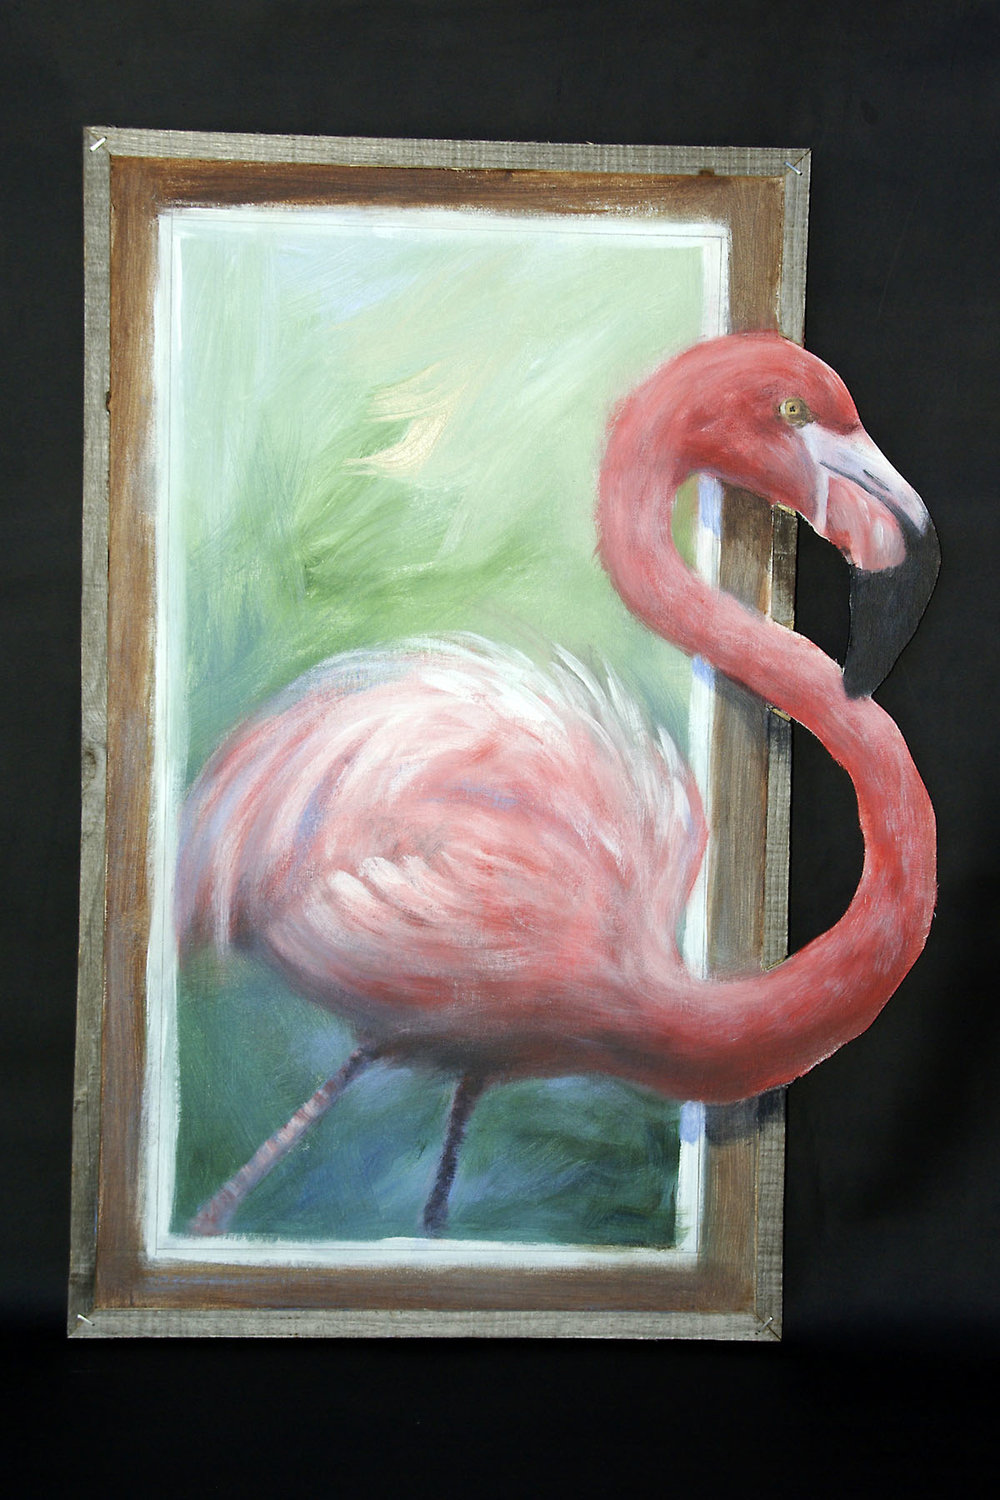 Flamingo by Quentin Minnis